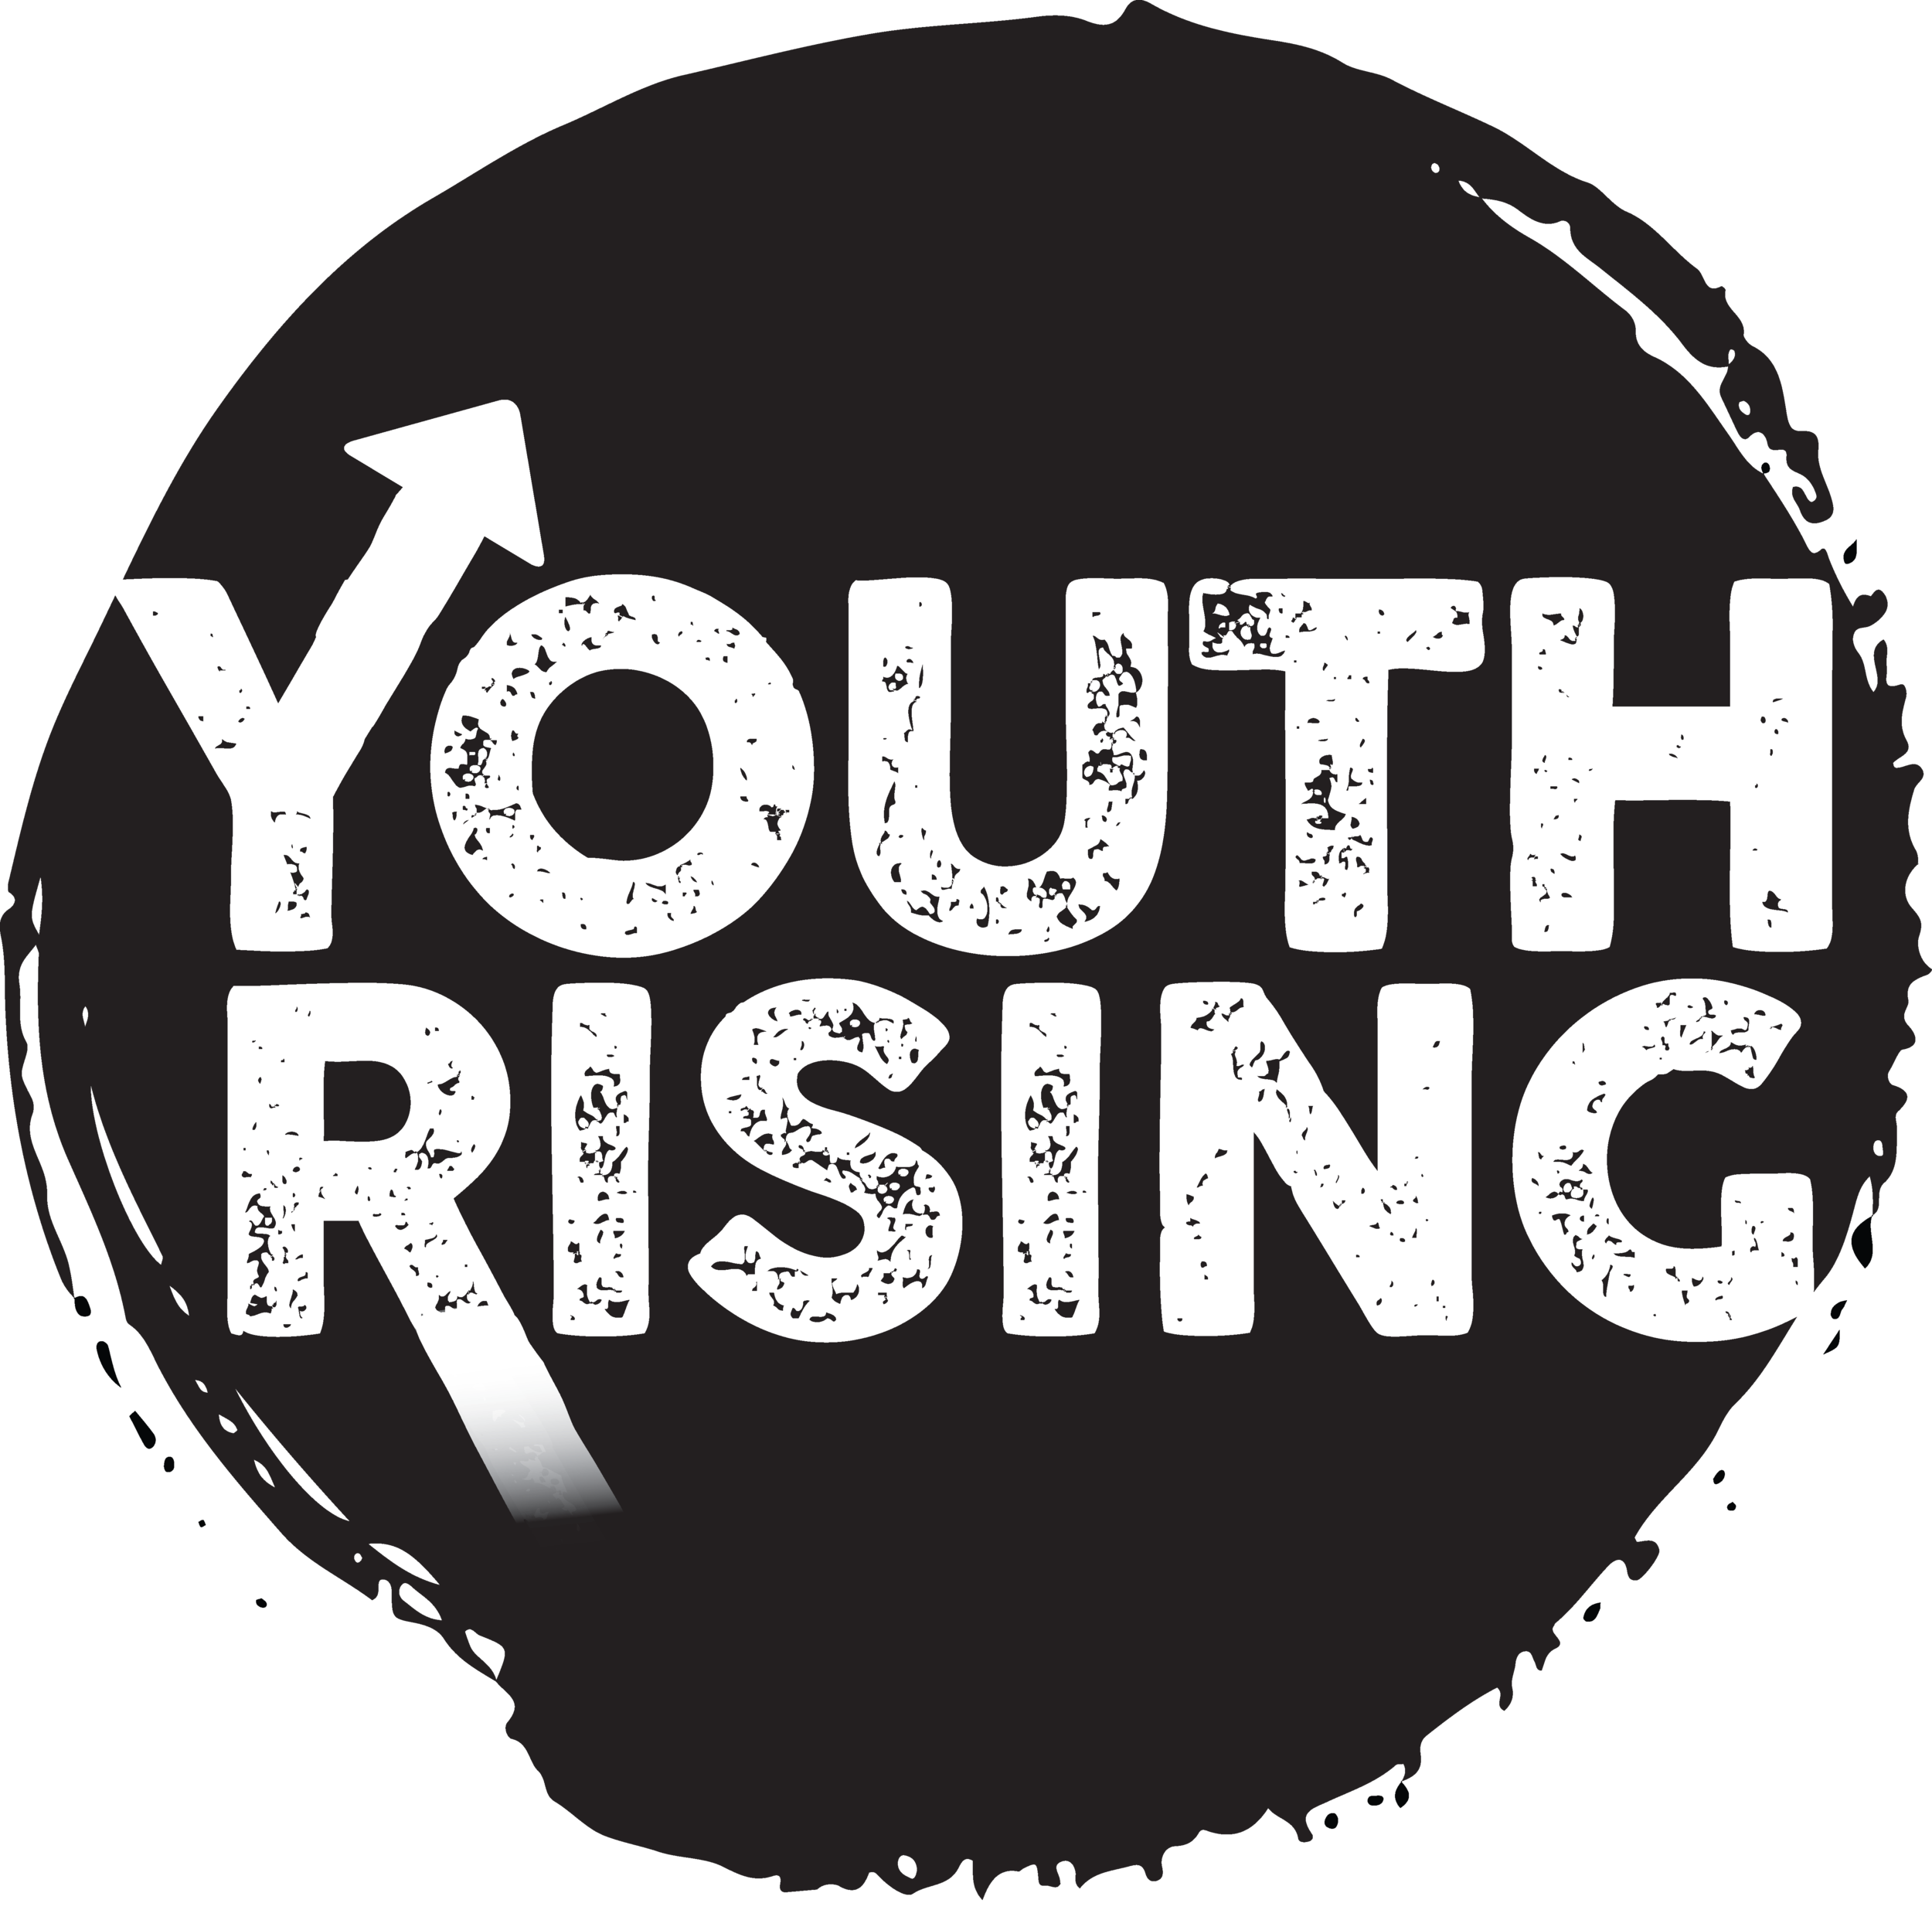 - COMING SOON (Drop-in Manager) X@youthrising.com(COMING SOON)